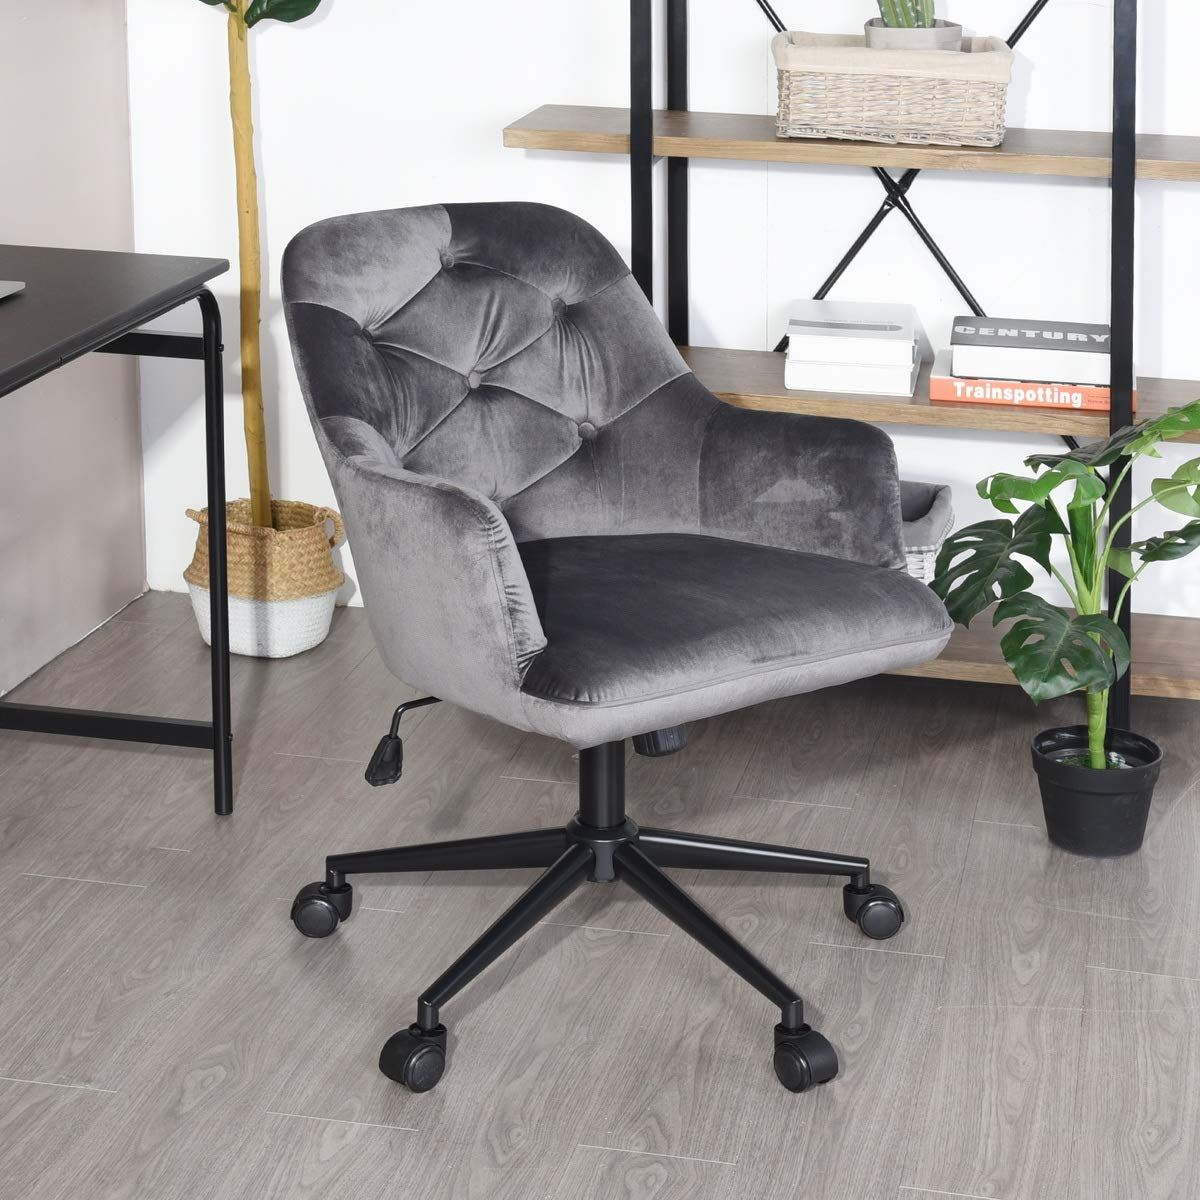 Office Chair In 2020 Home Office Chairs Task Chair Home Office Furniture